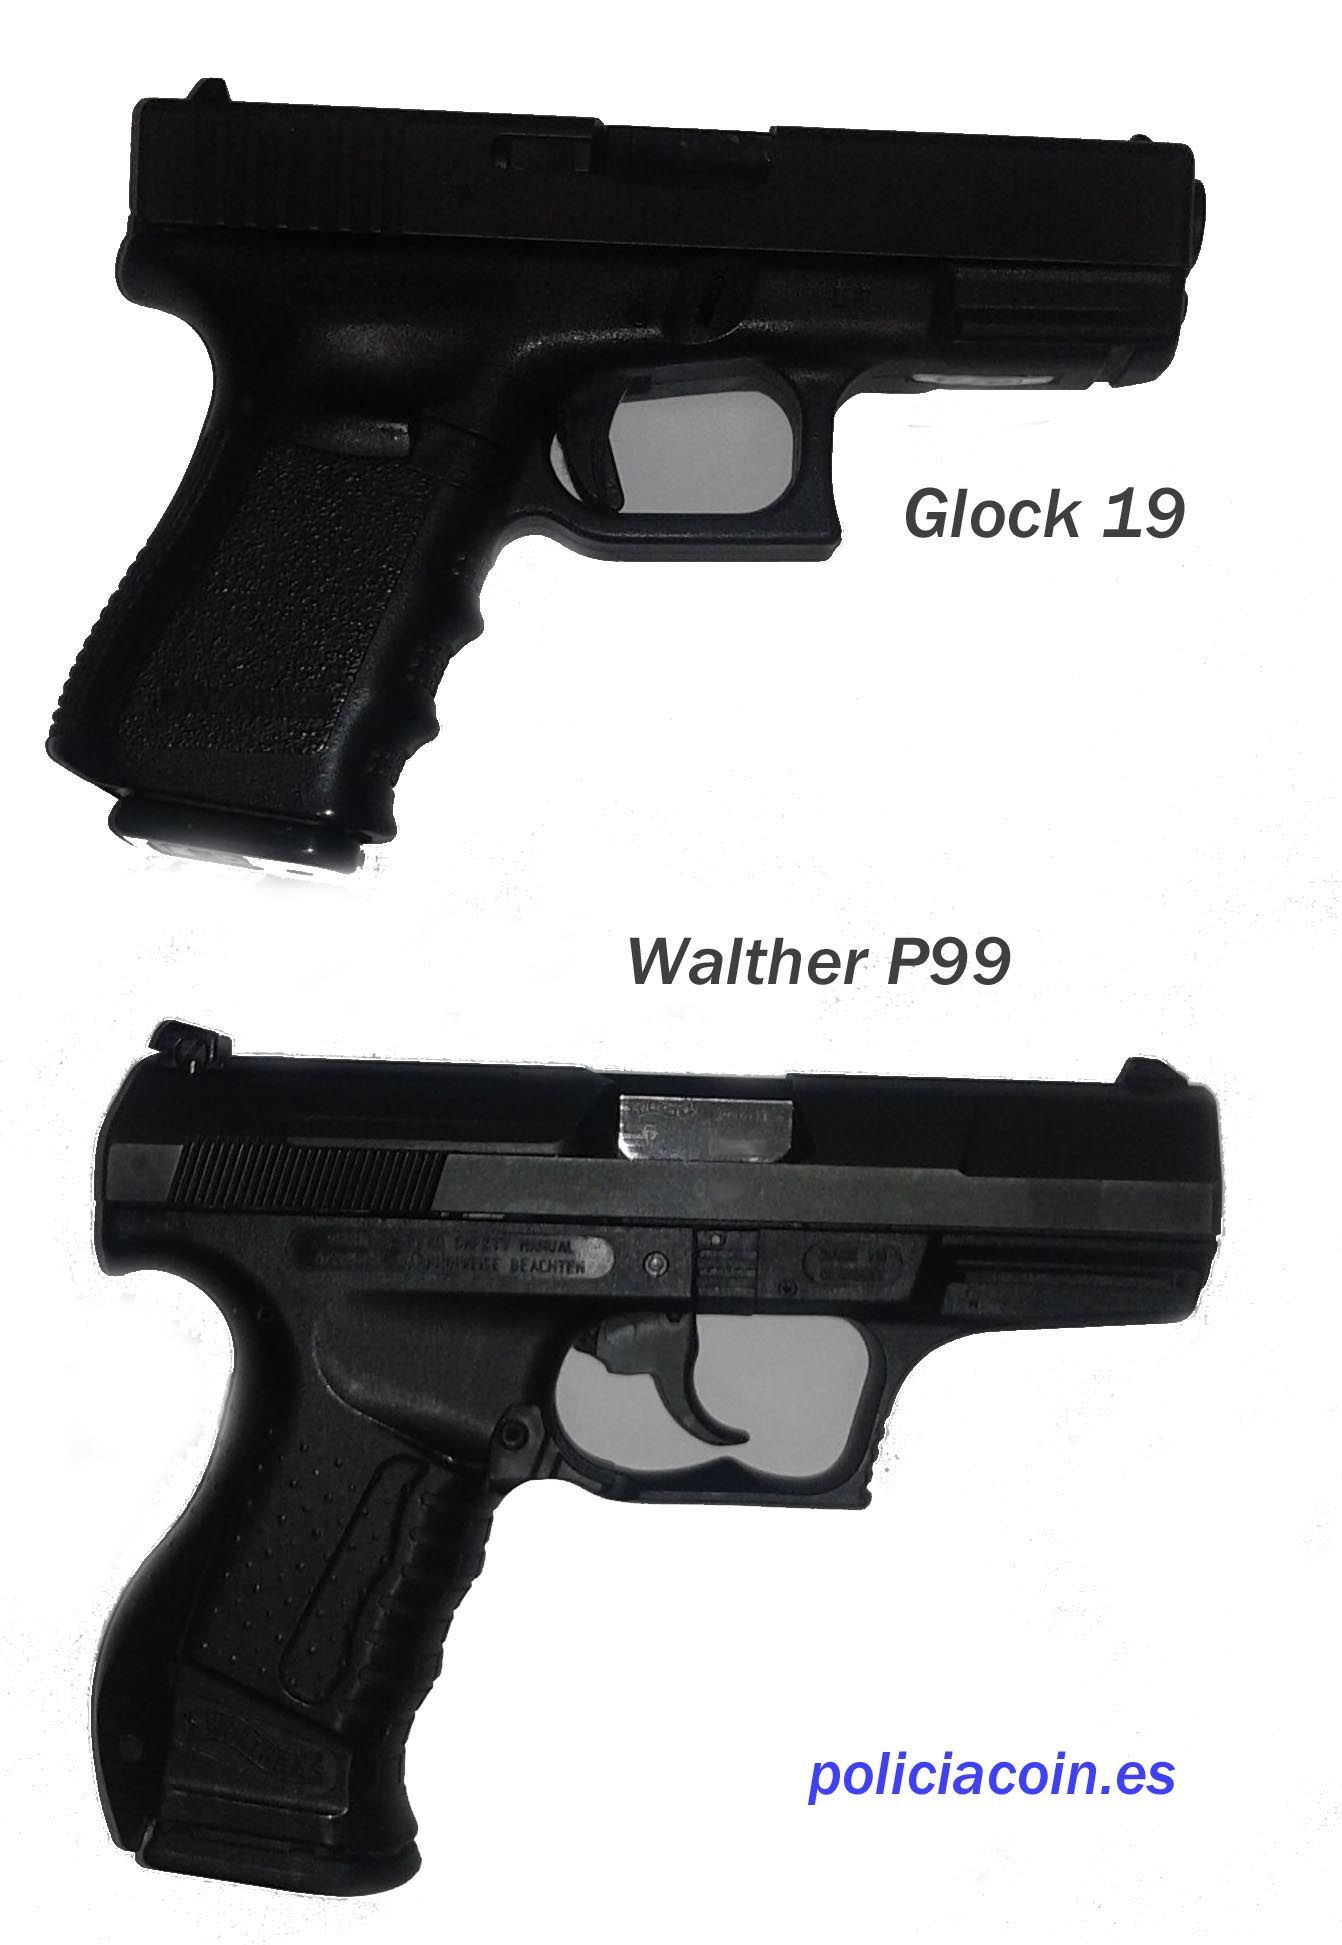 Walther vs Glock